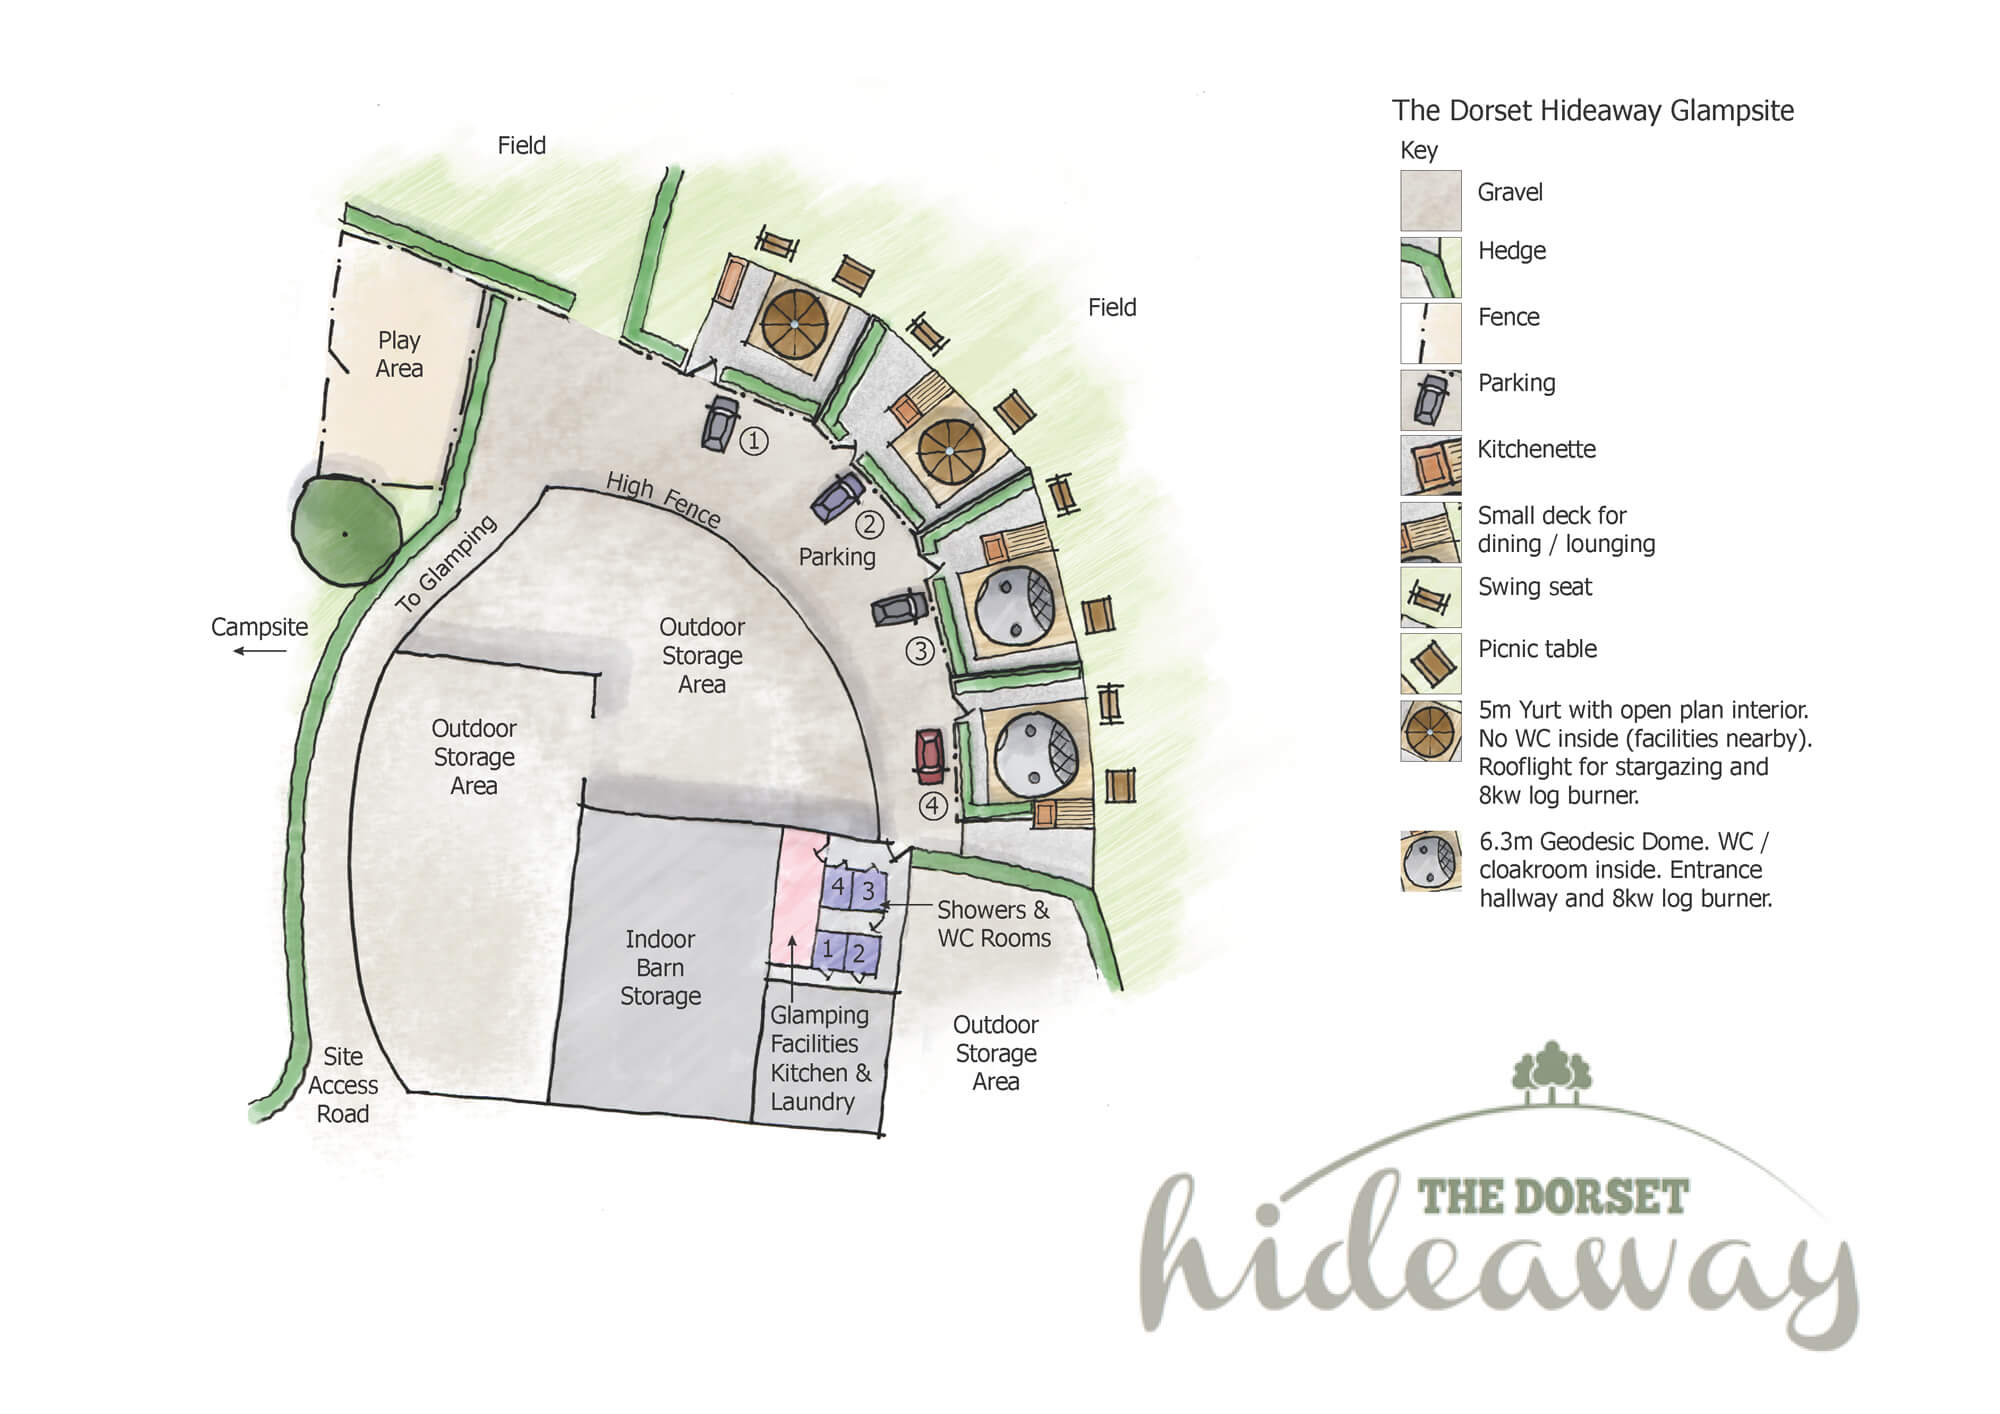 Glamping-Area-sitemap